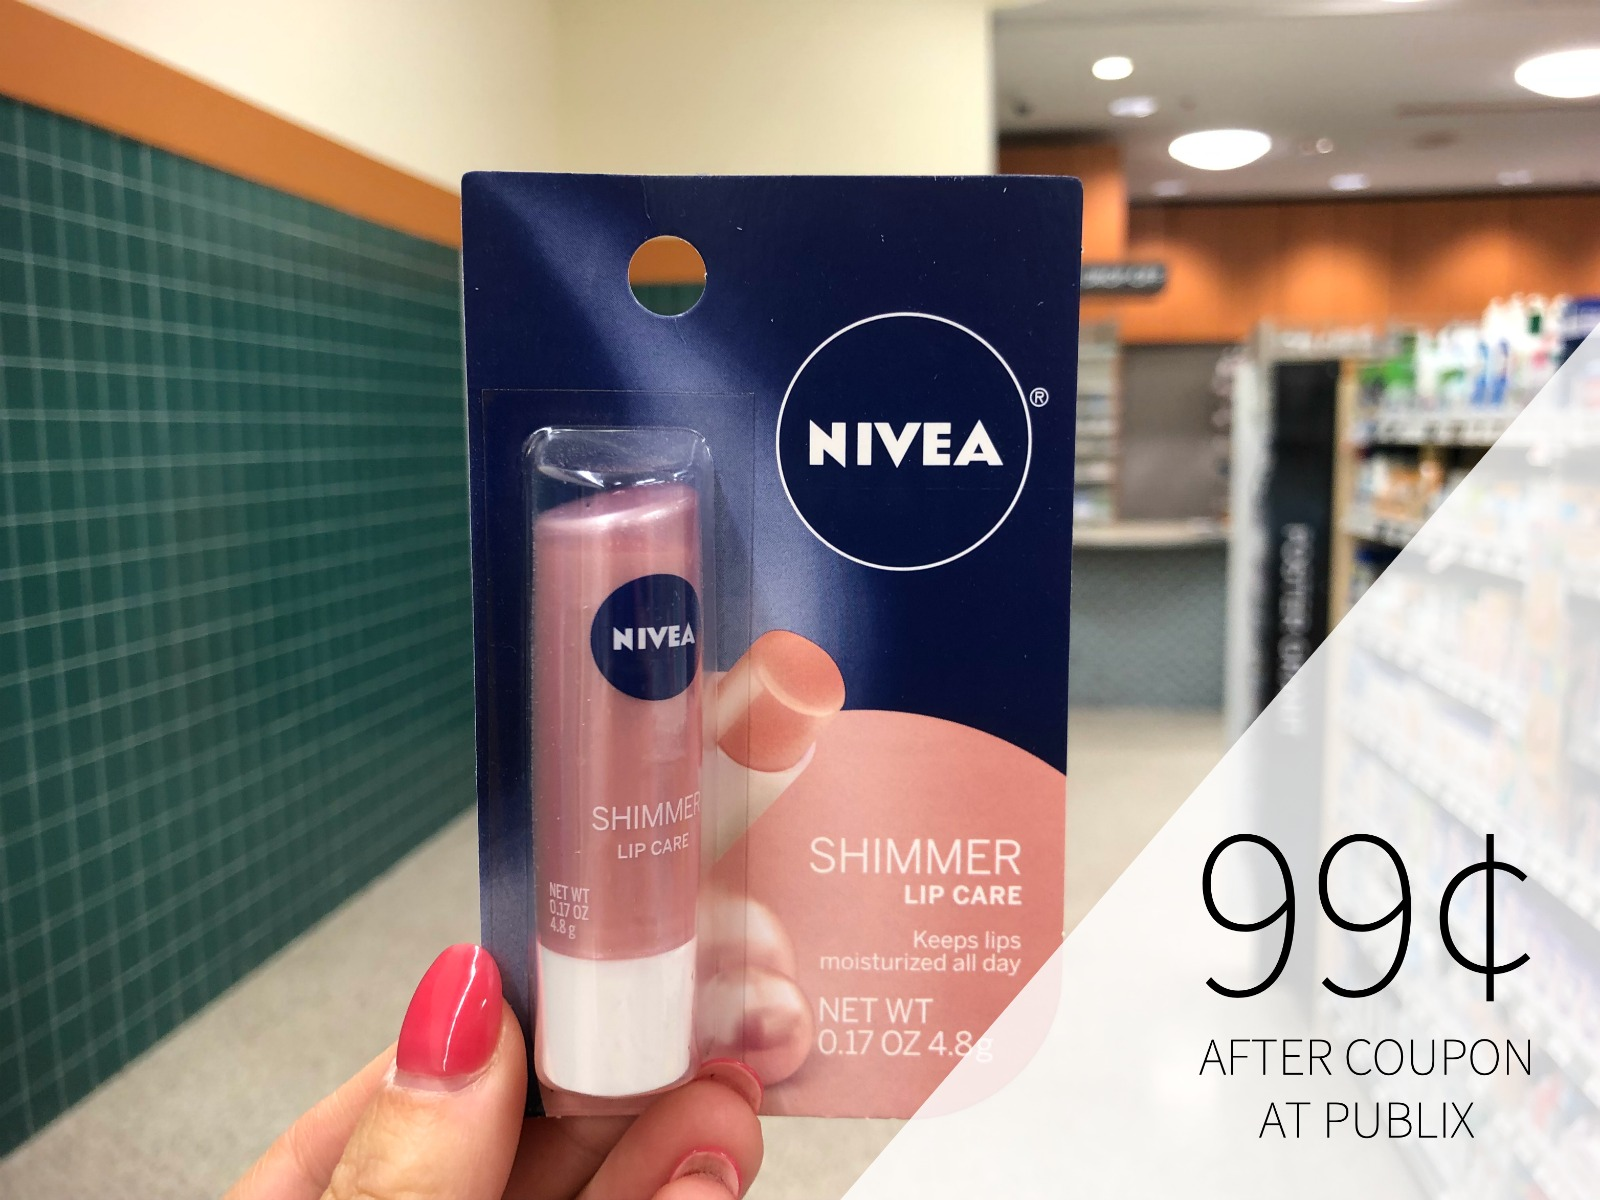 Nivea Lip Care Items Only 87¢ At Publix (Plus Lotion For Just $3.62 - Over Half Off!) on I Heart Publix 1